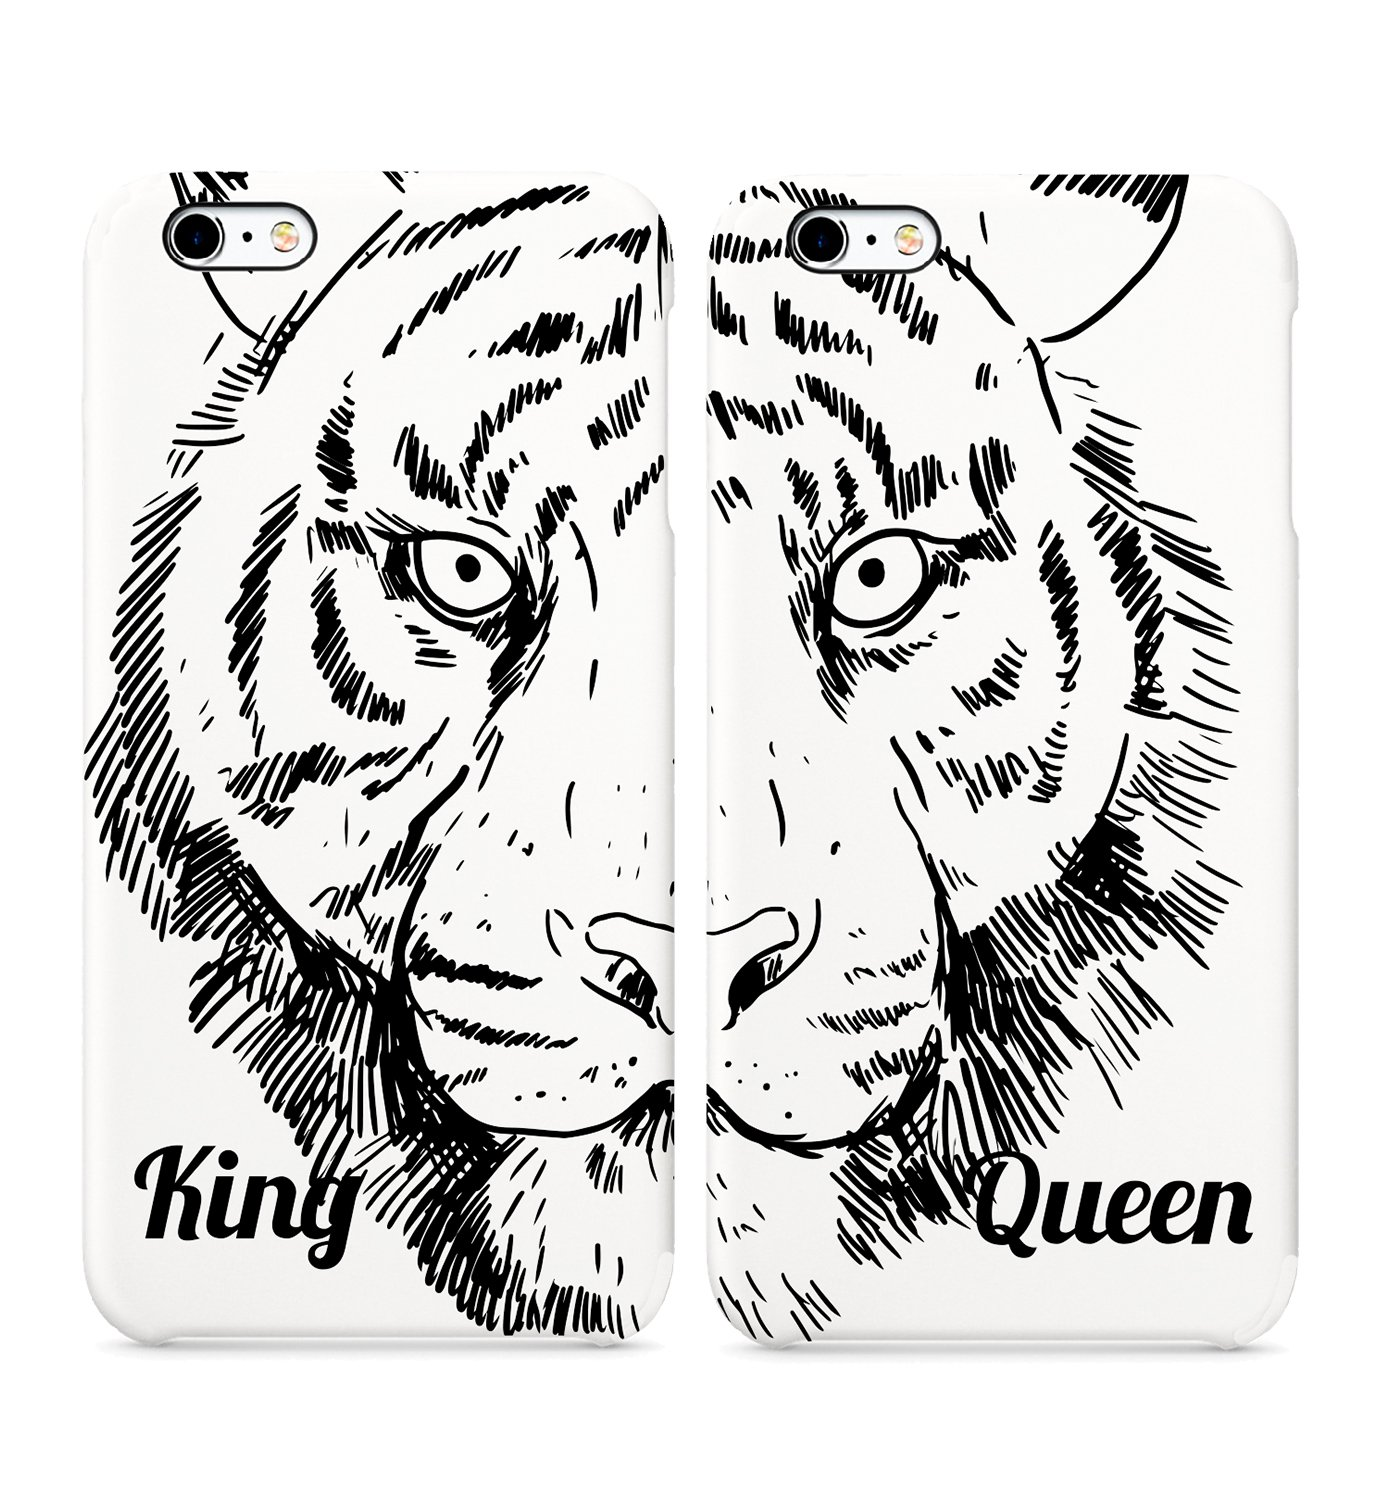 : King Queen Tiger Jungle Animated Hand Drawn Hard